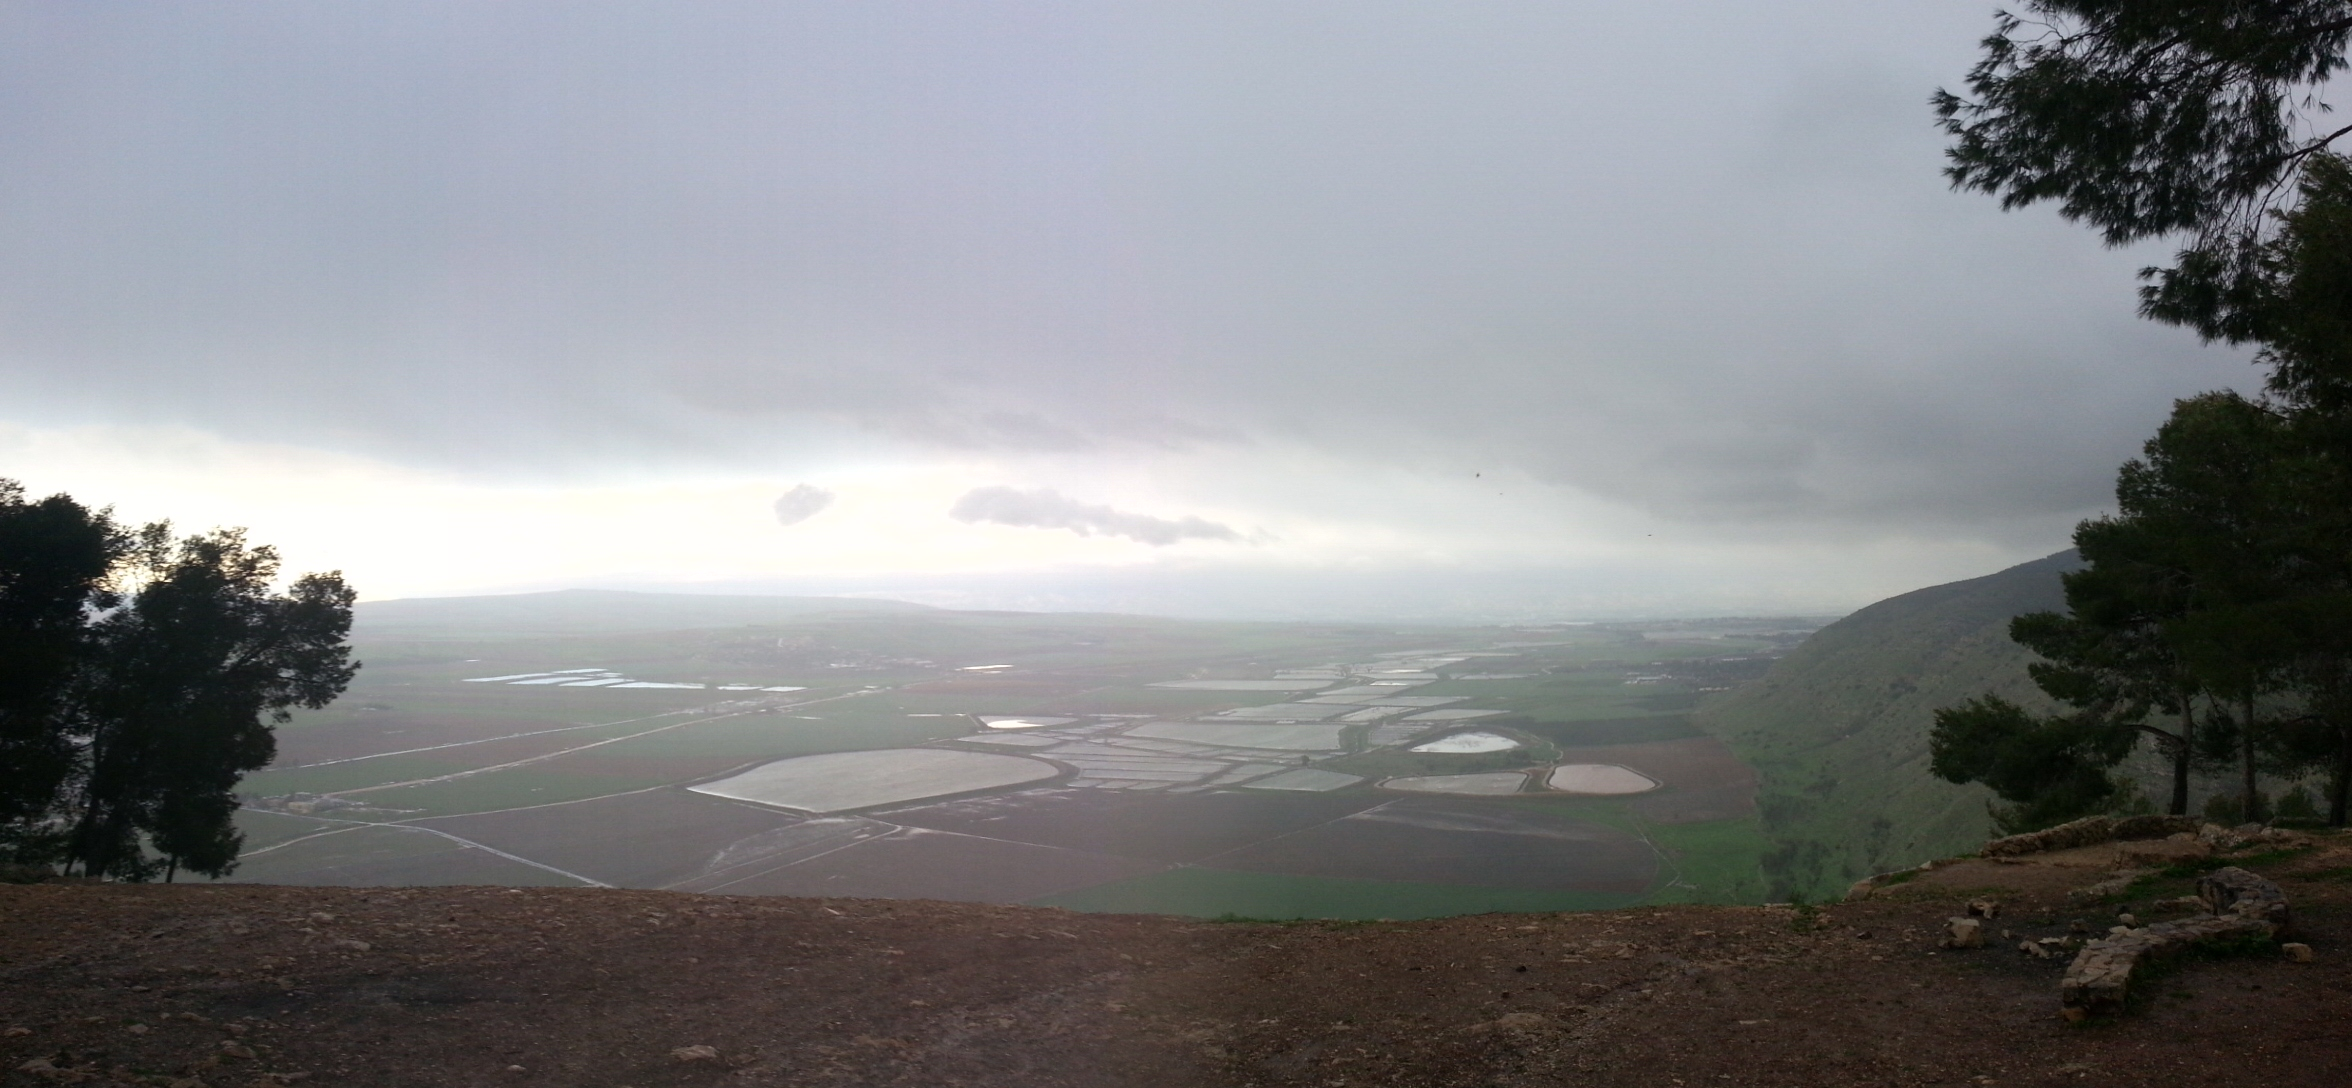 View from Mt Barkan on the Gilboa